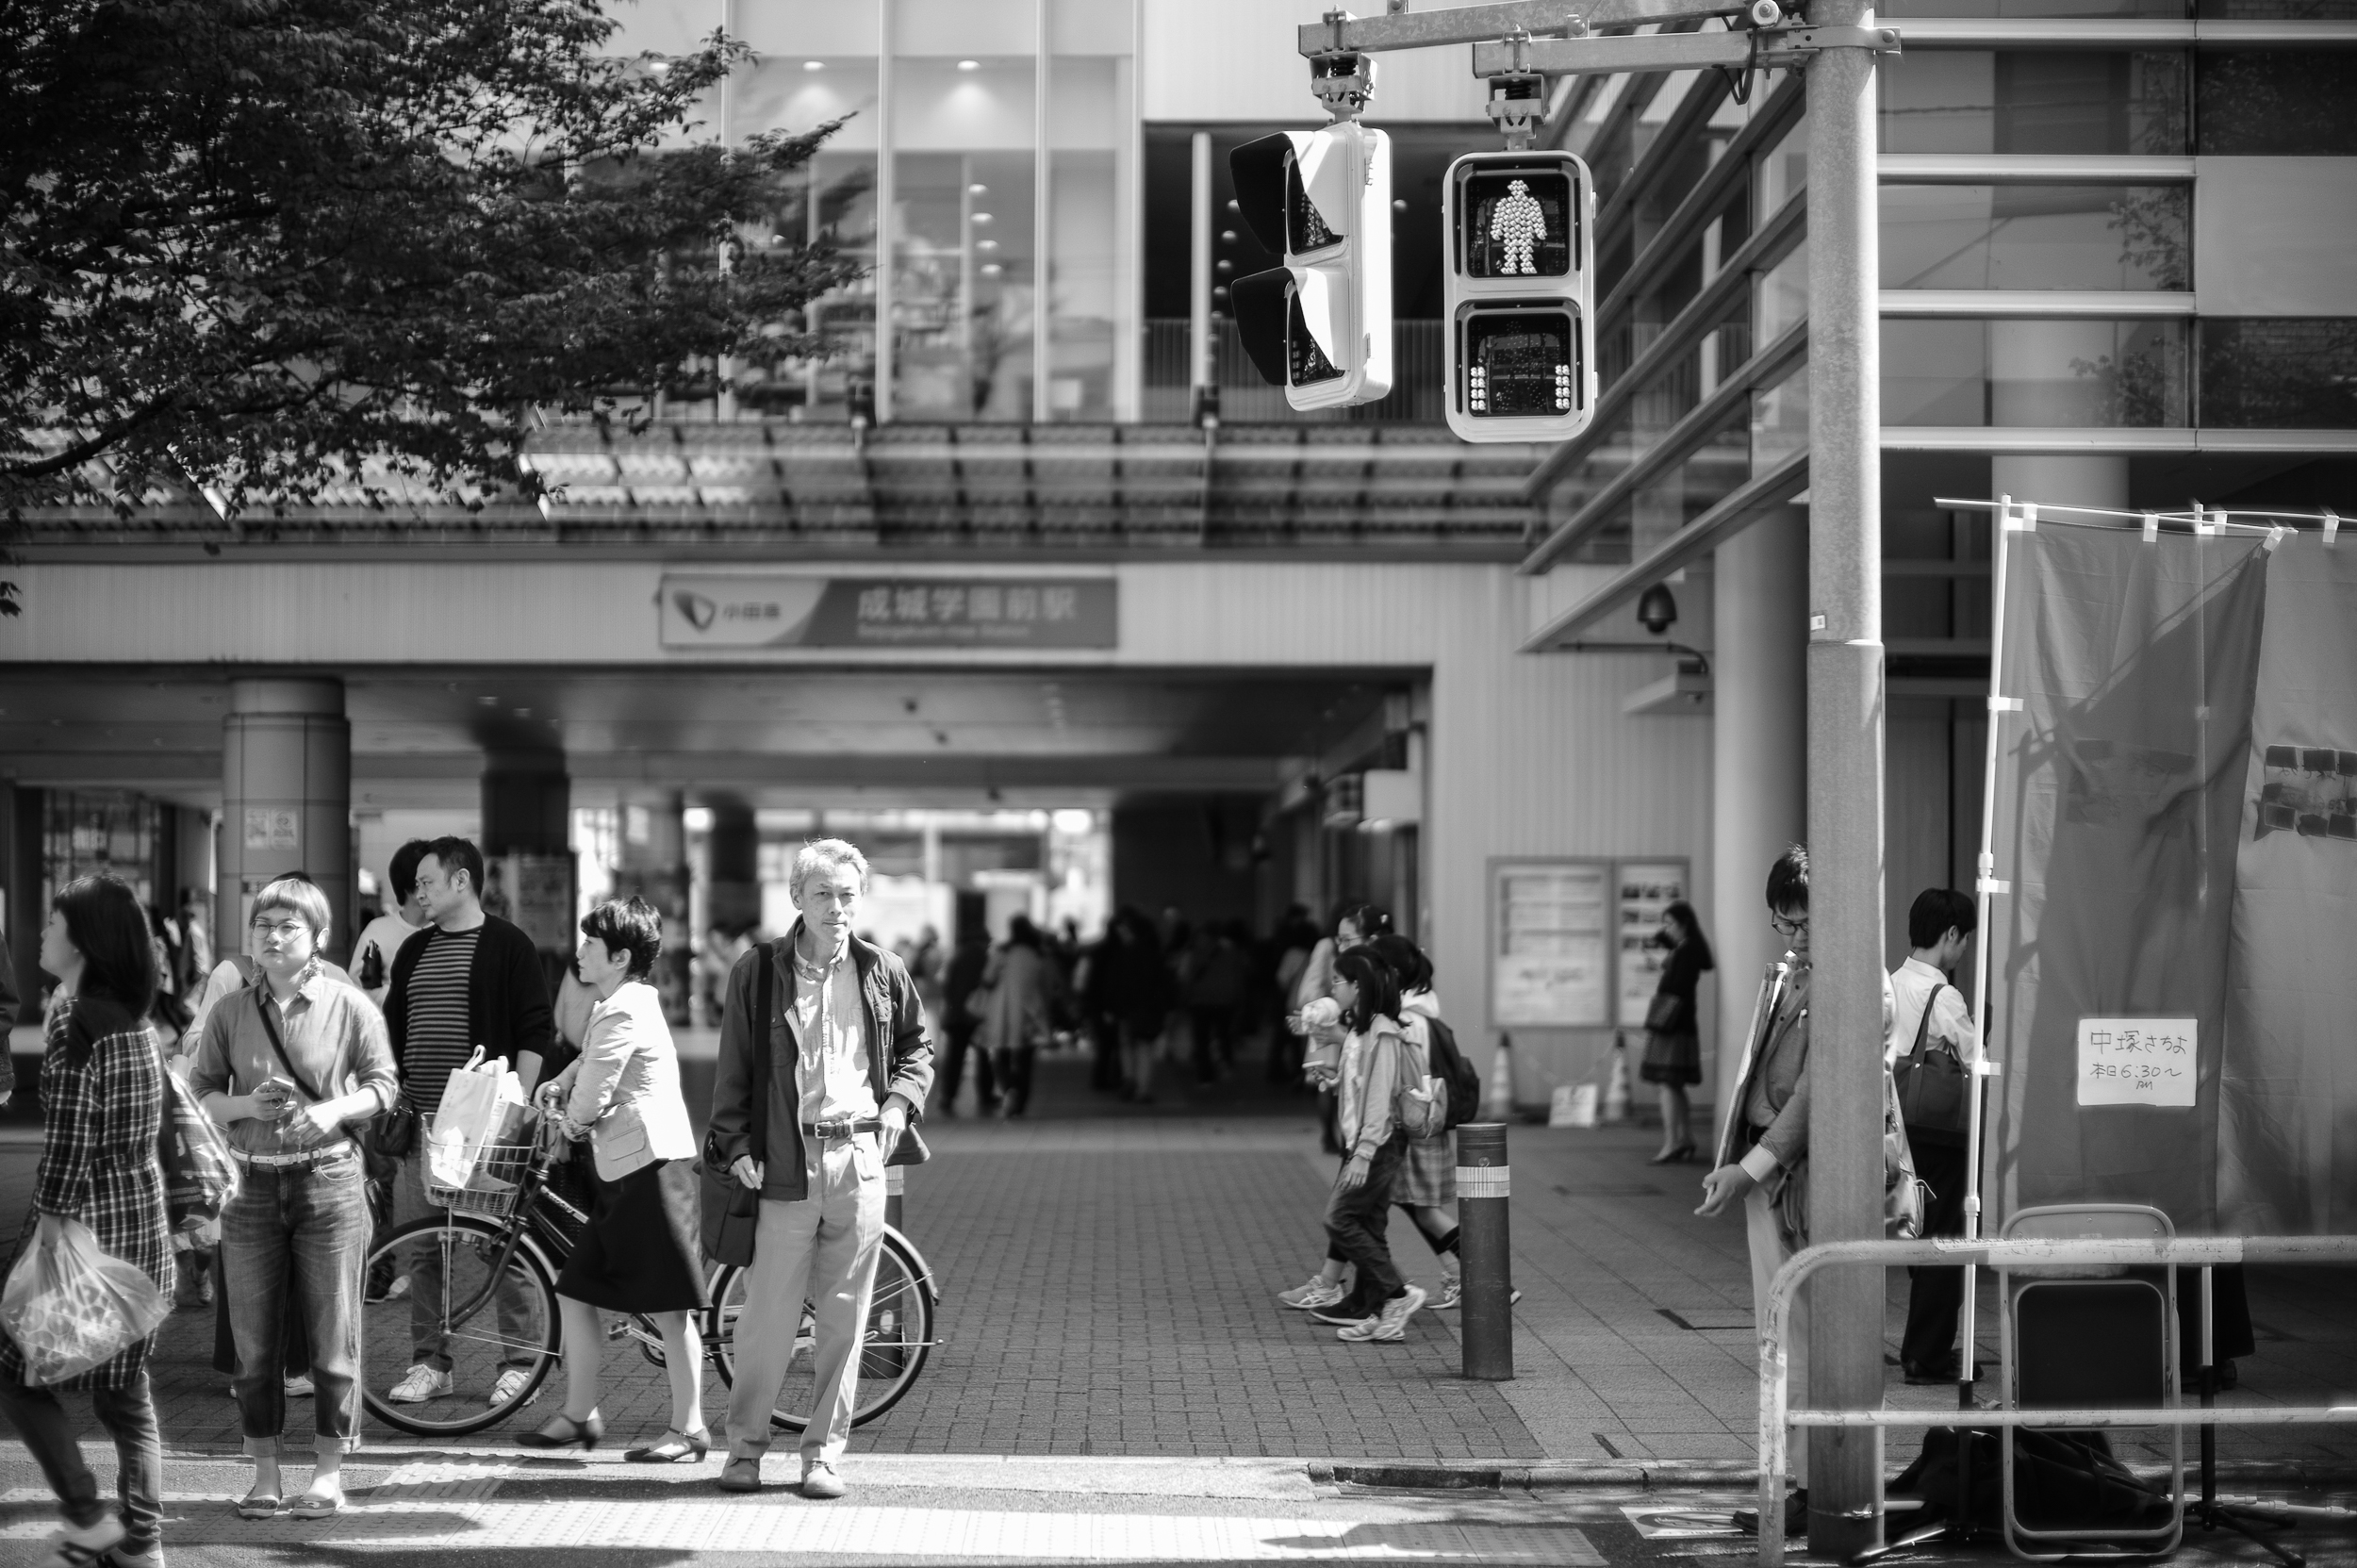 In front of the Seijogakuenmae station (成城学園前)